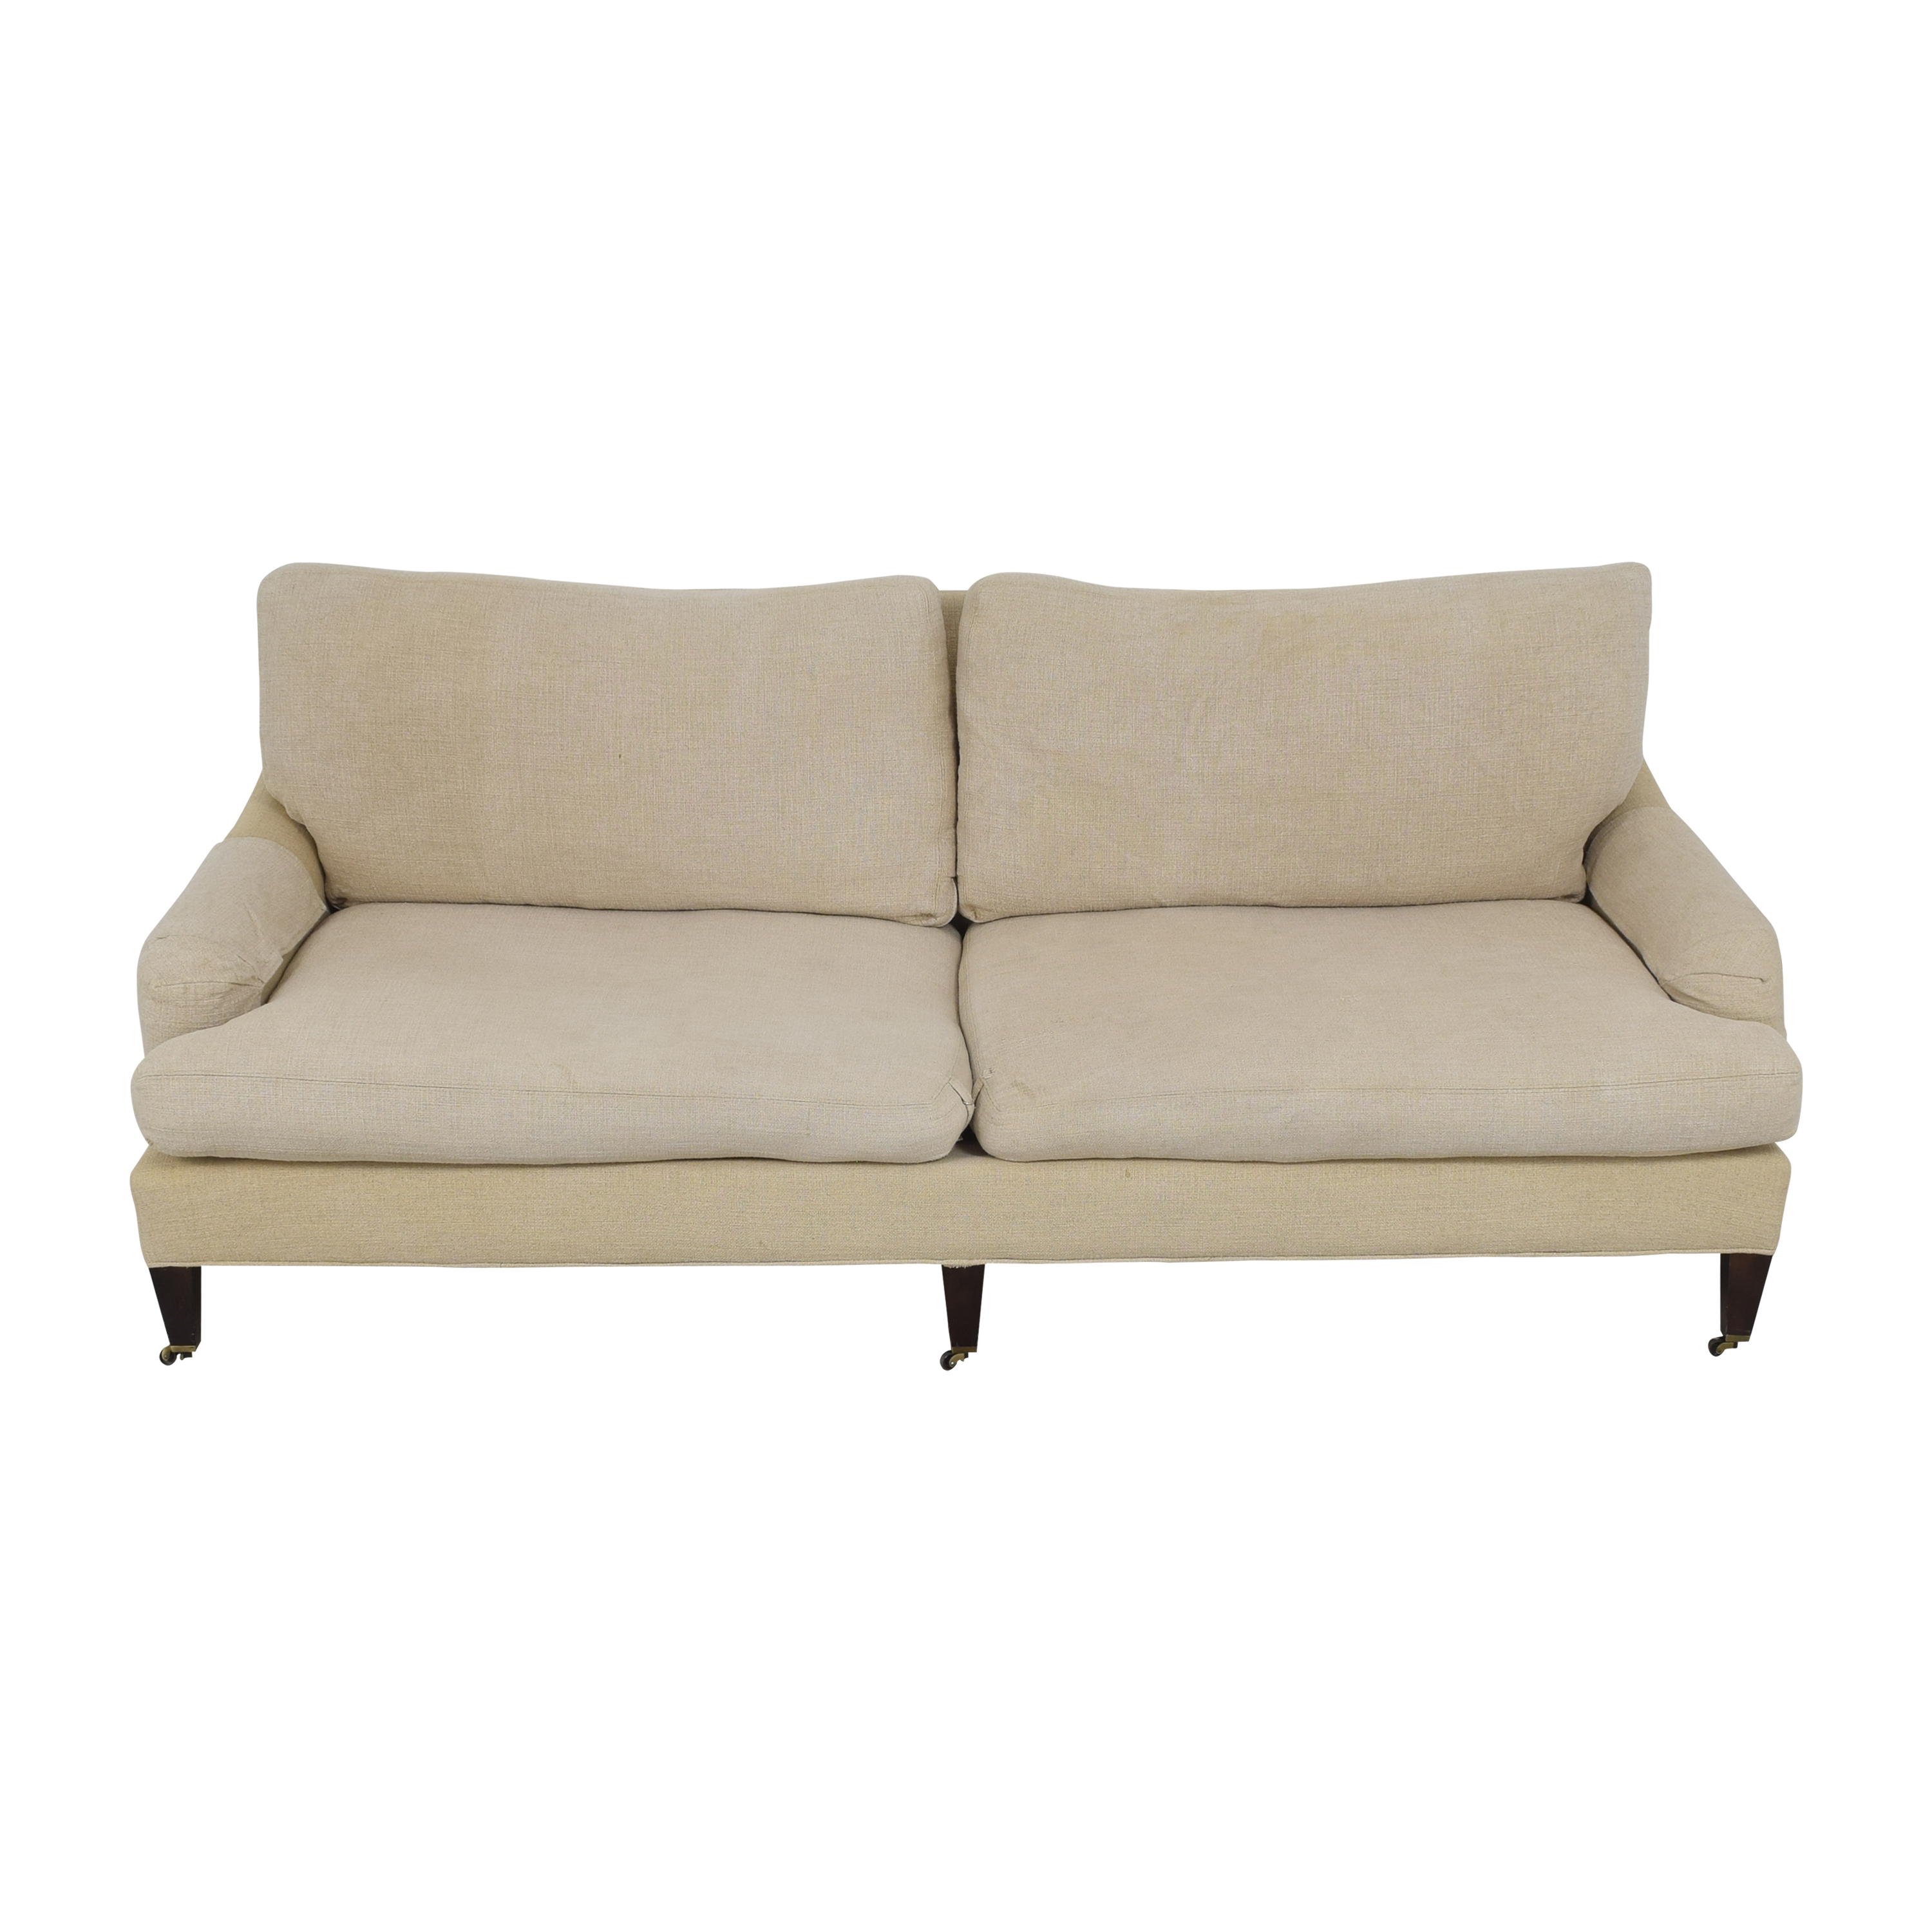 Crate & Barrel Crate & Barrel Essex Sofa with Casters used